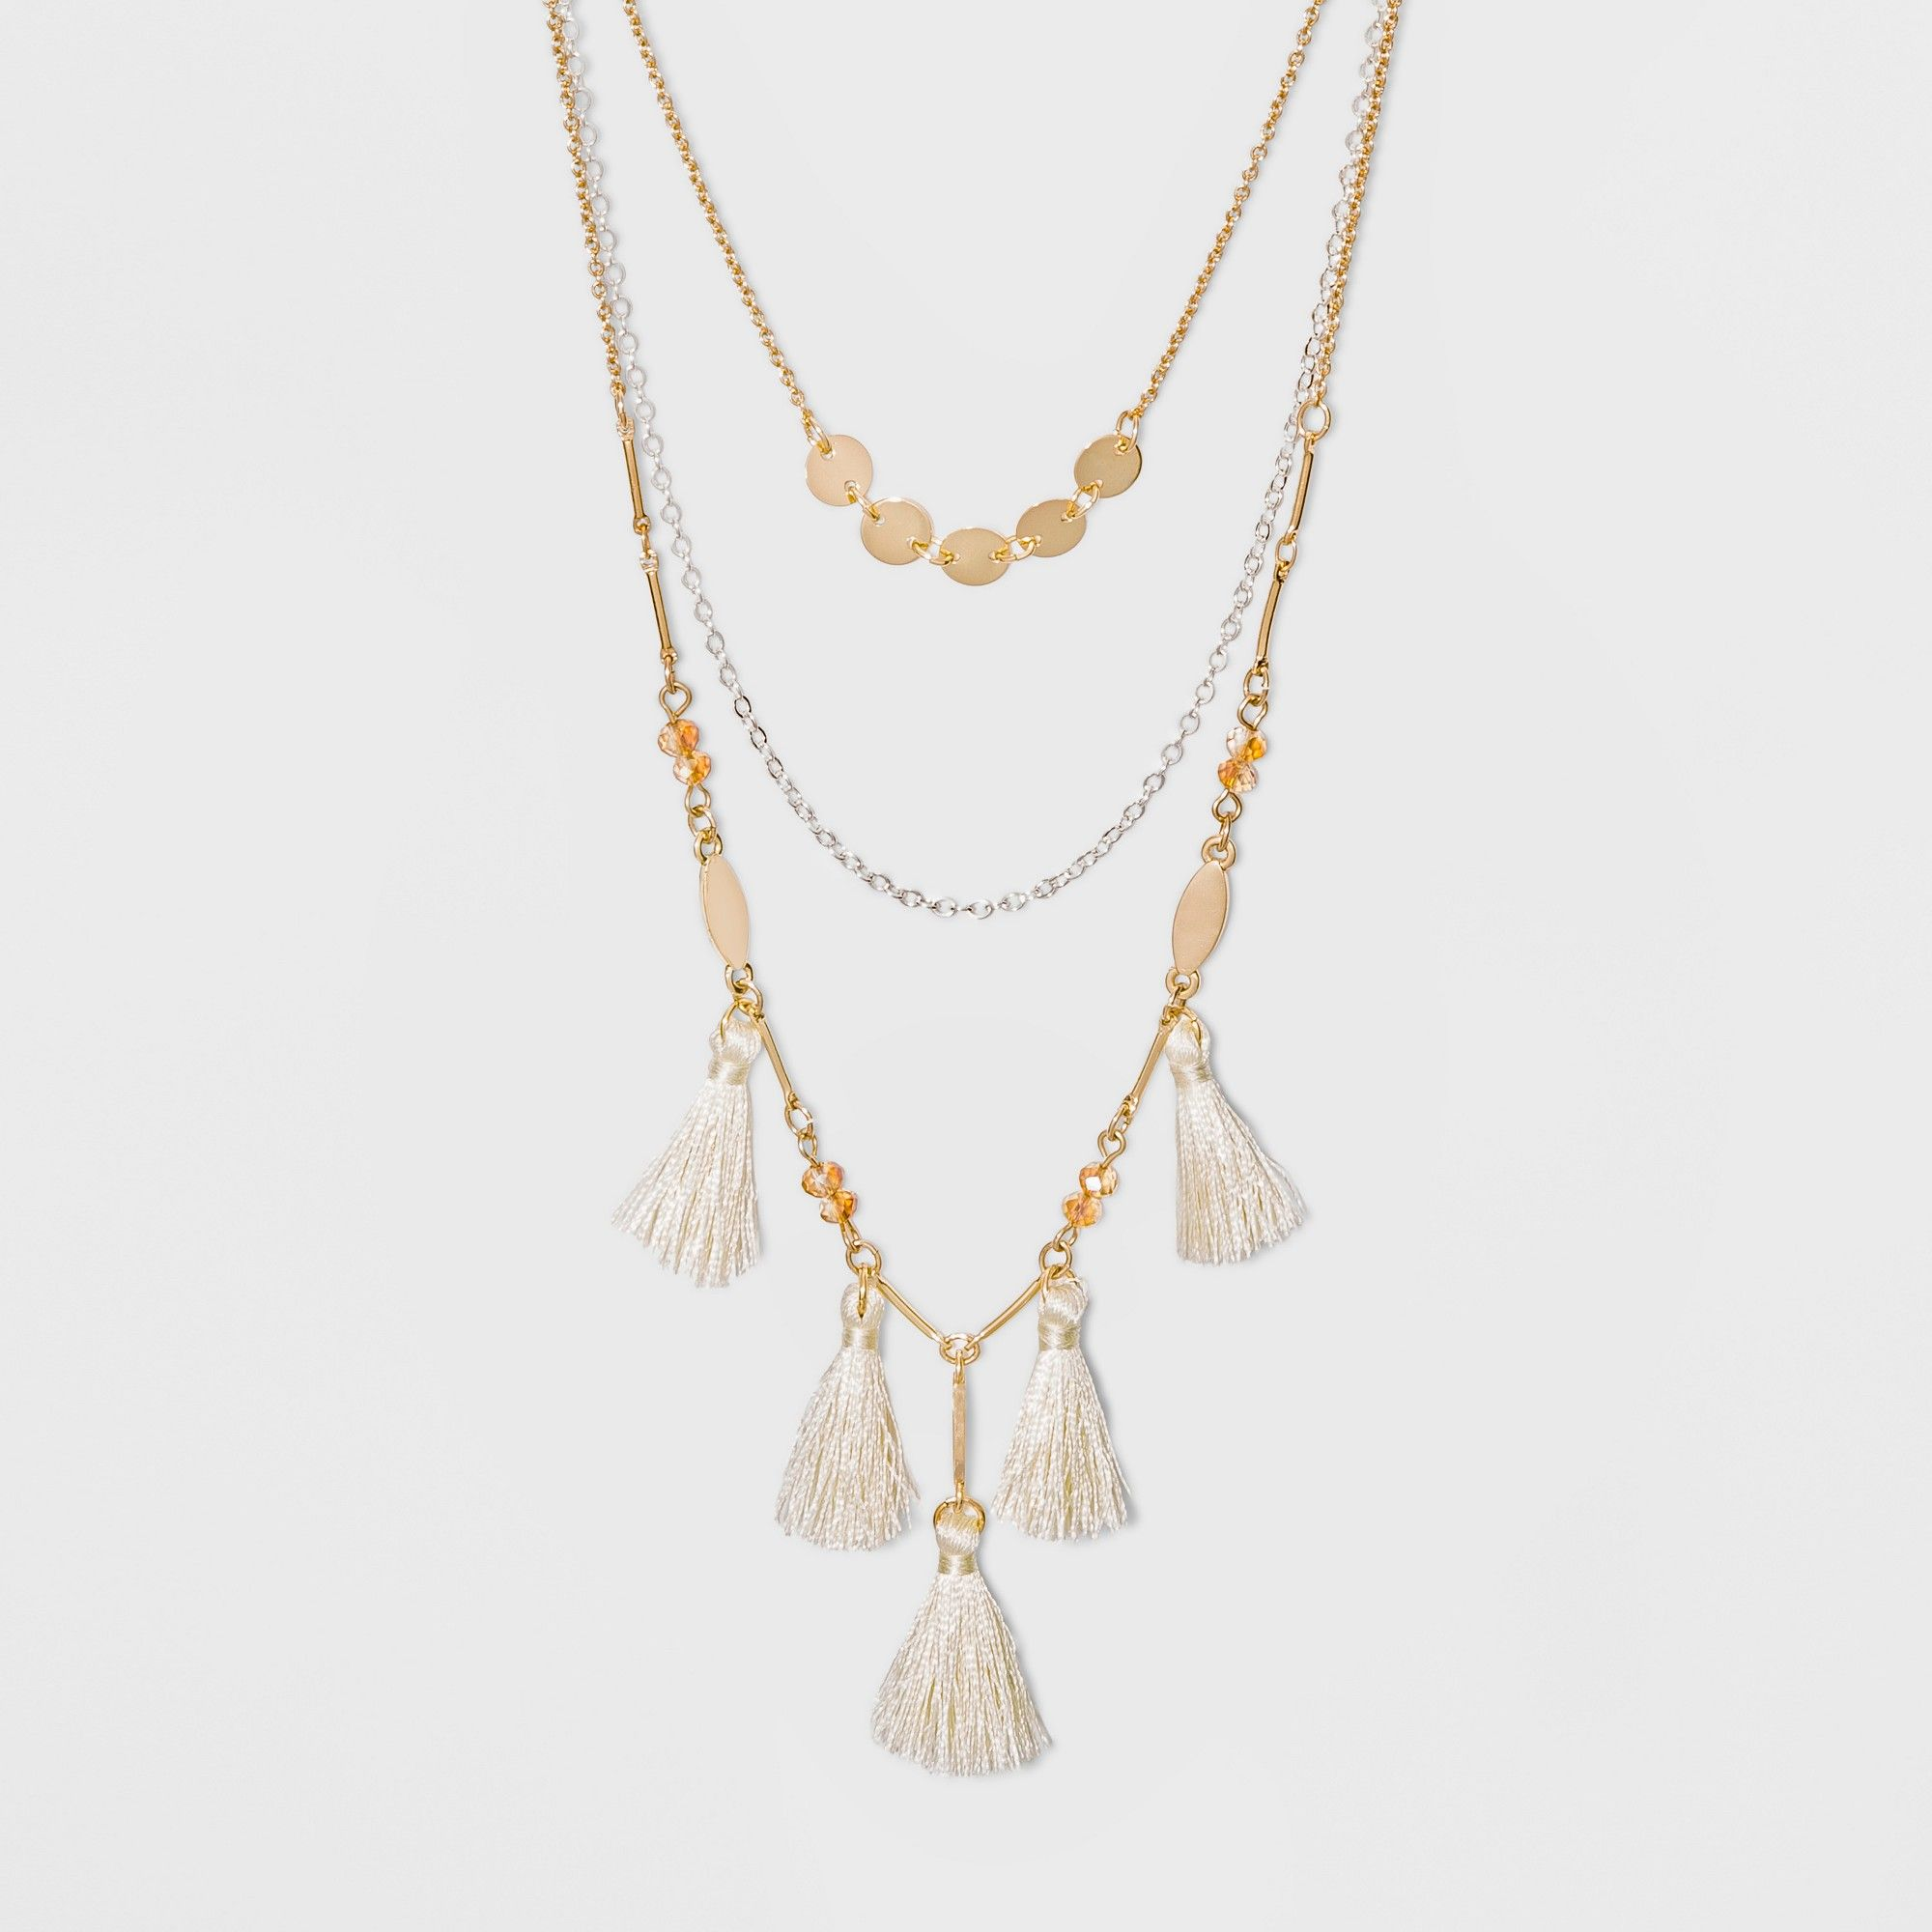 81fb96d4988ee petiteThree Rows and Tassels Short Necklace - A New Day Gold ...